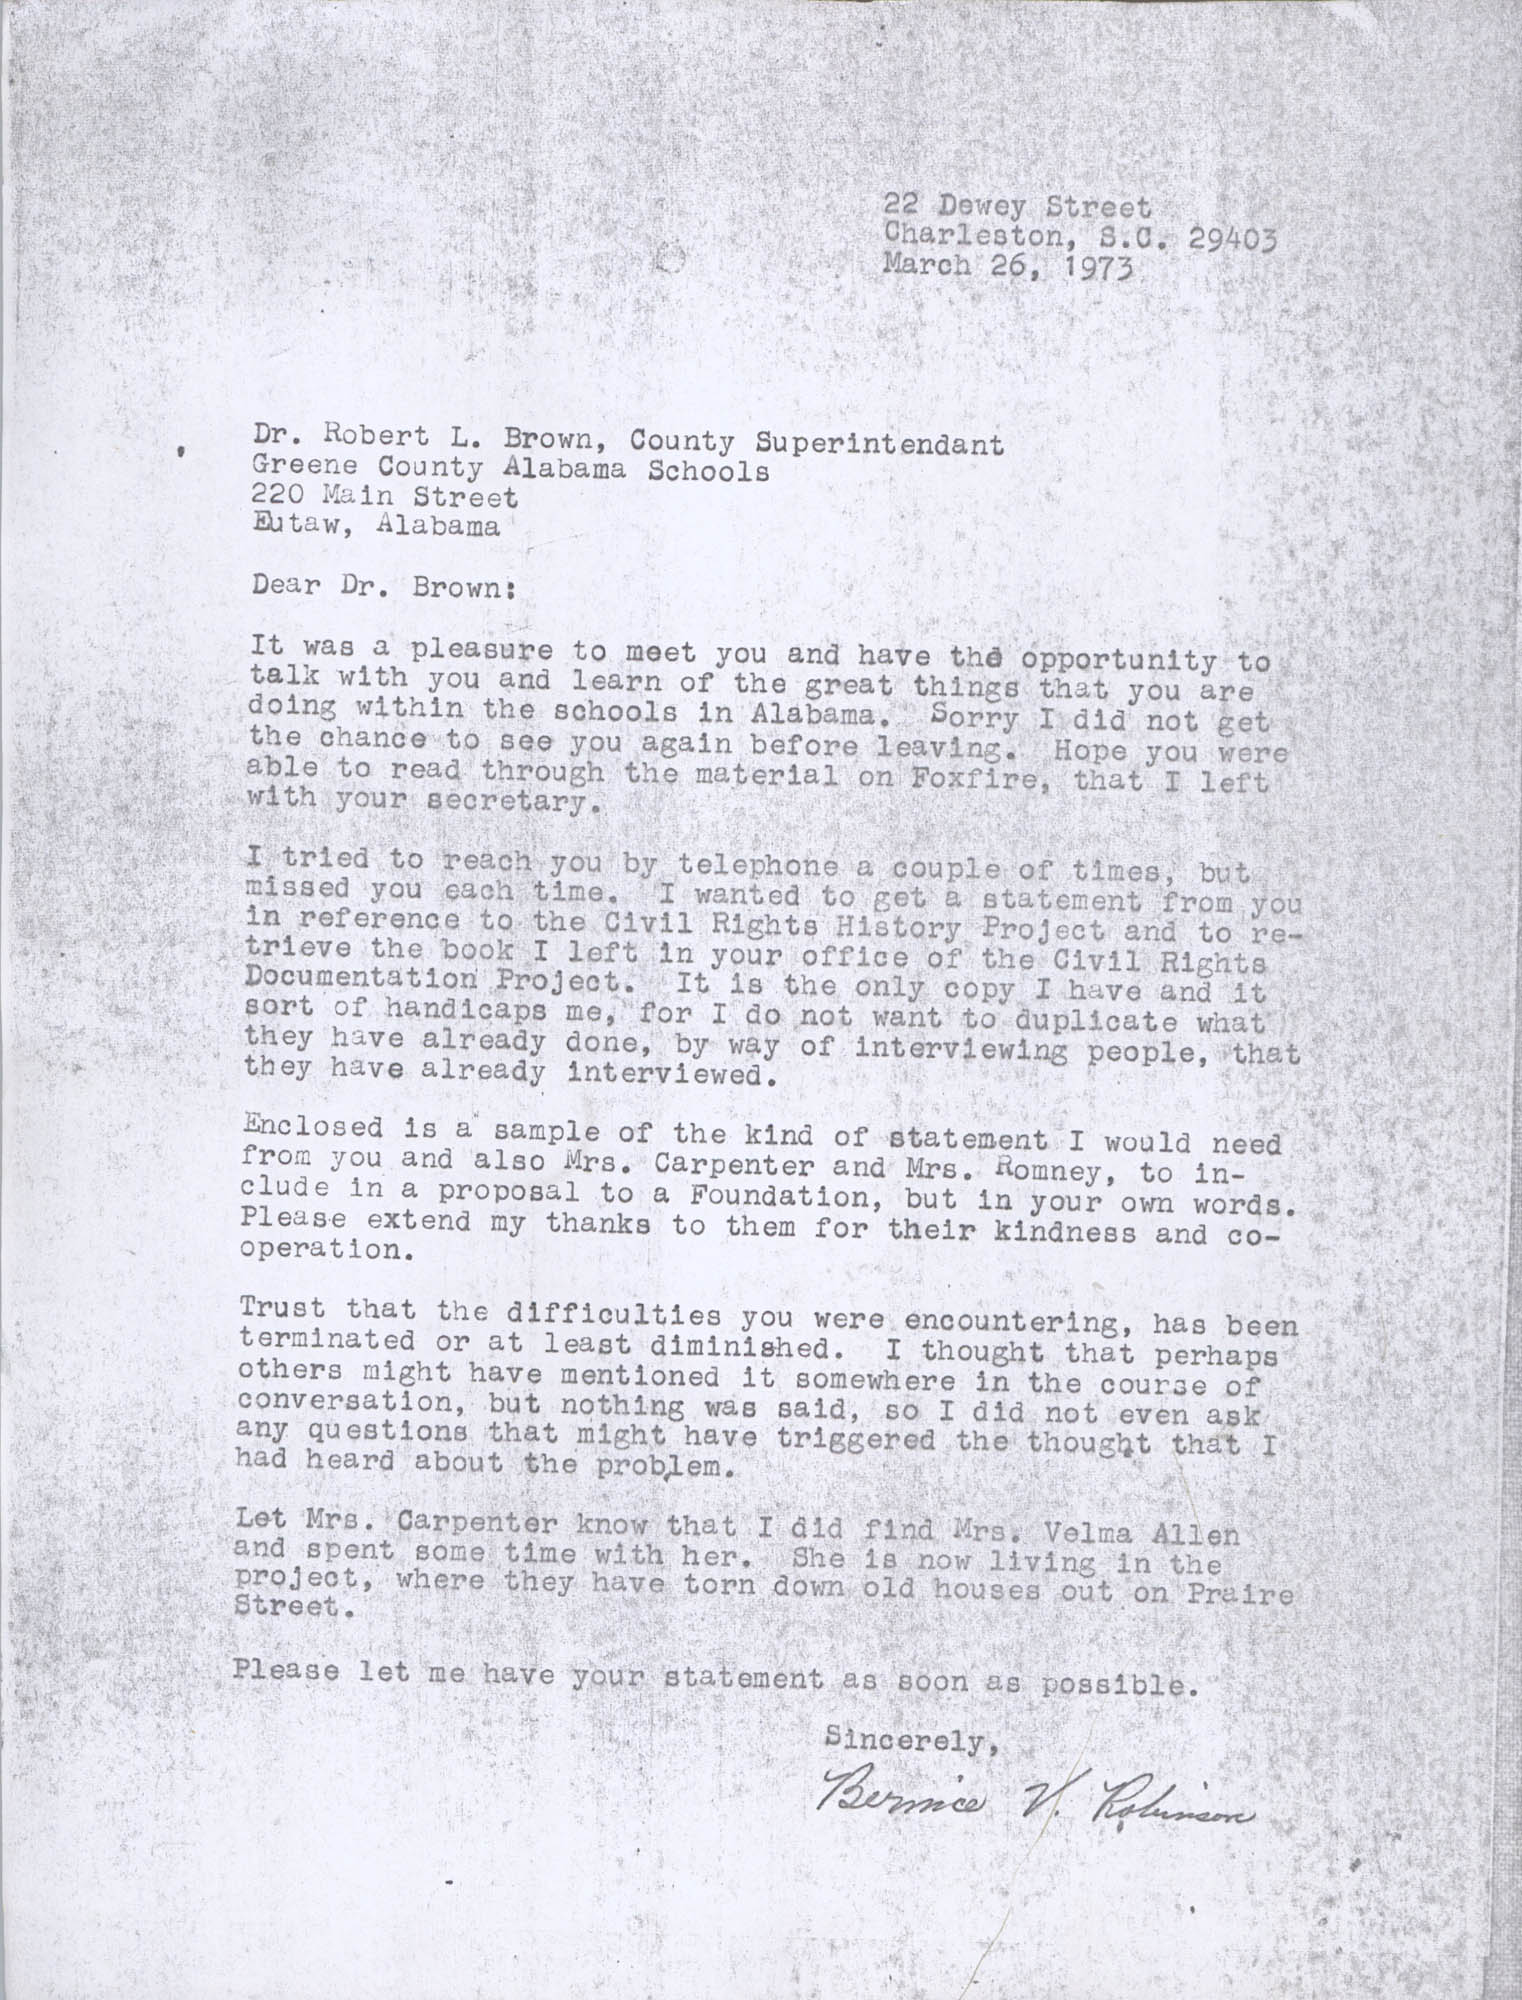 Letter from Bernice Robinson to Robert Brown, March 26, 1973